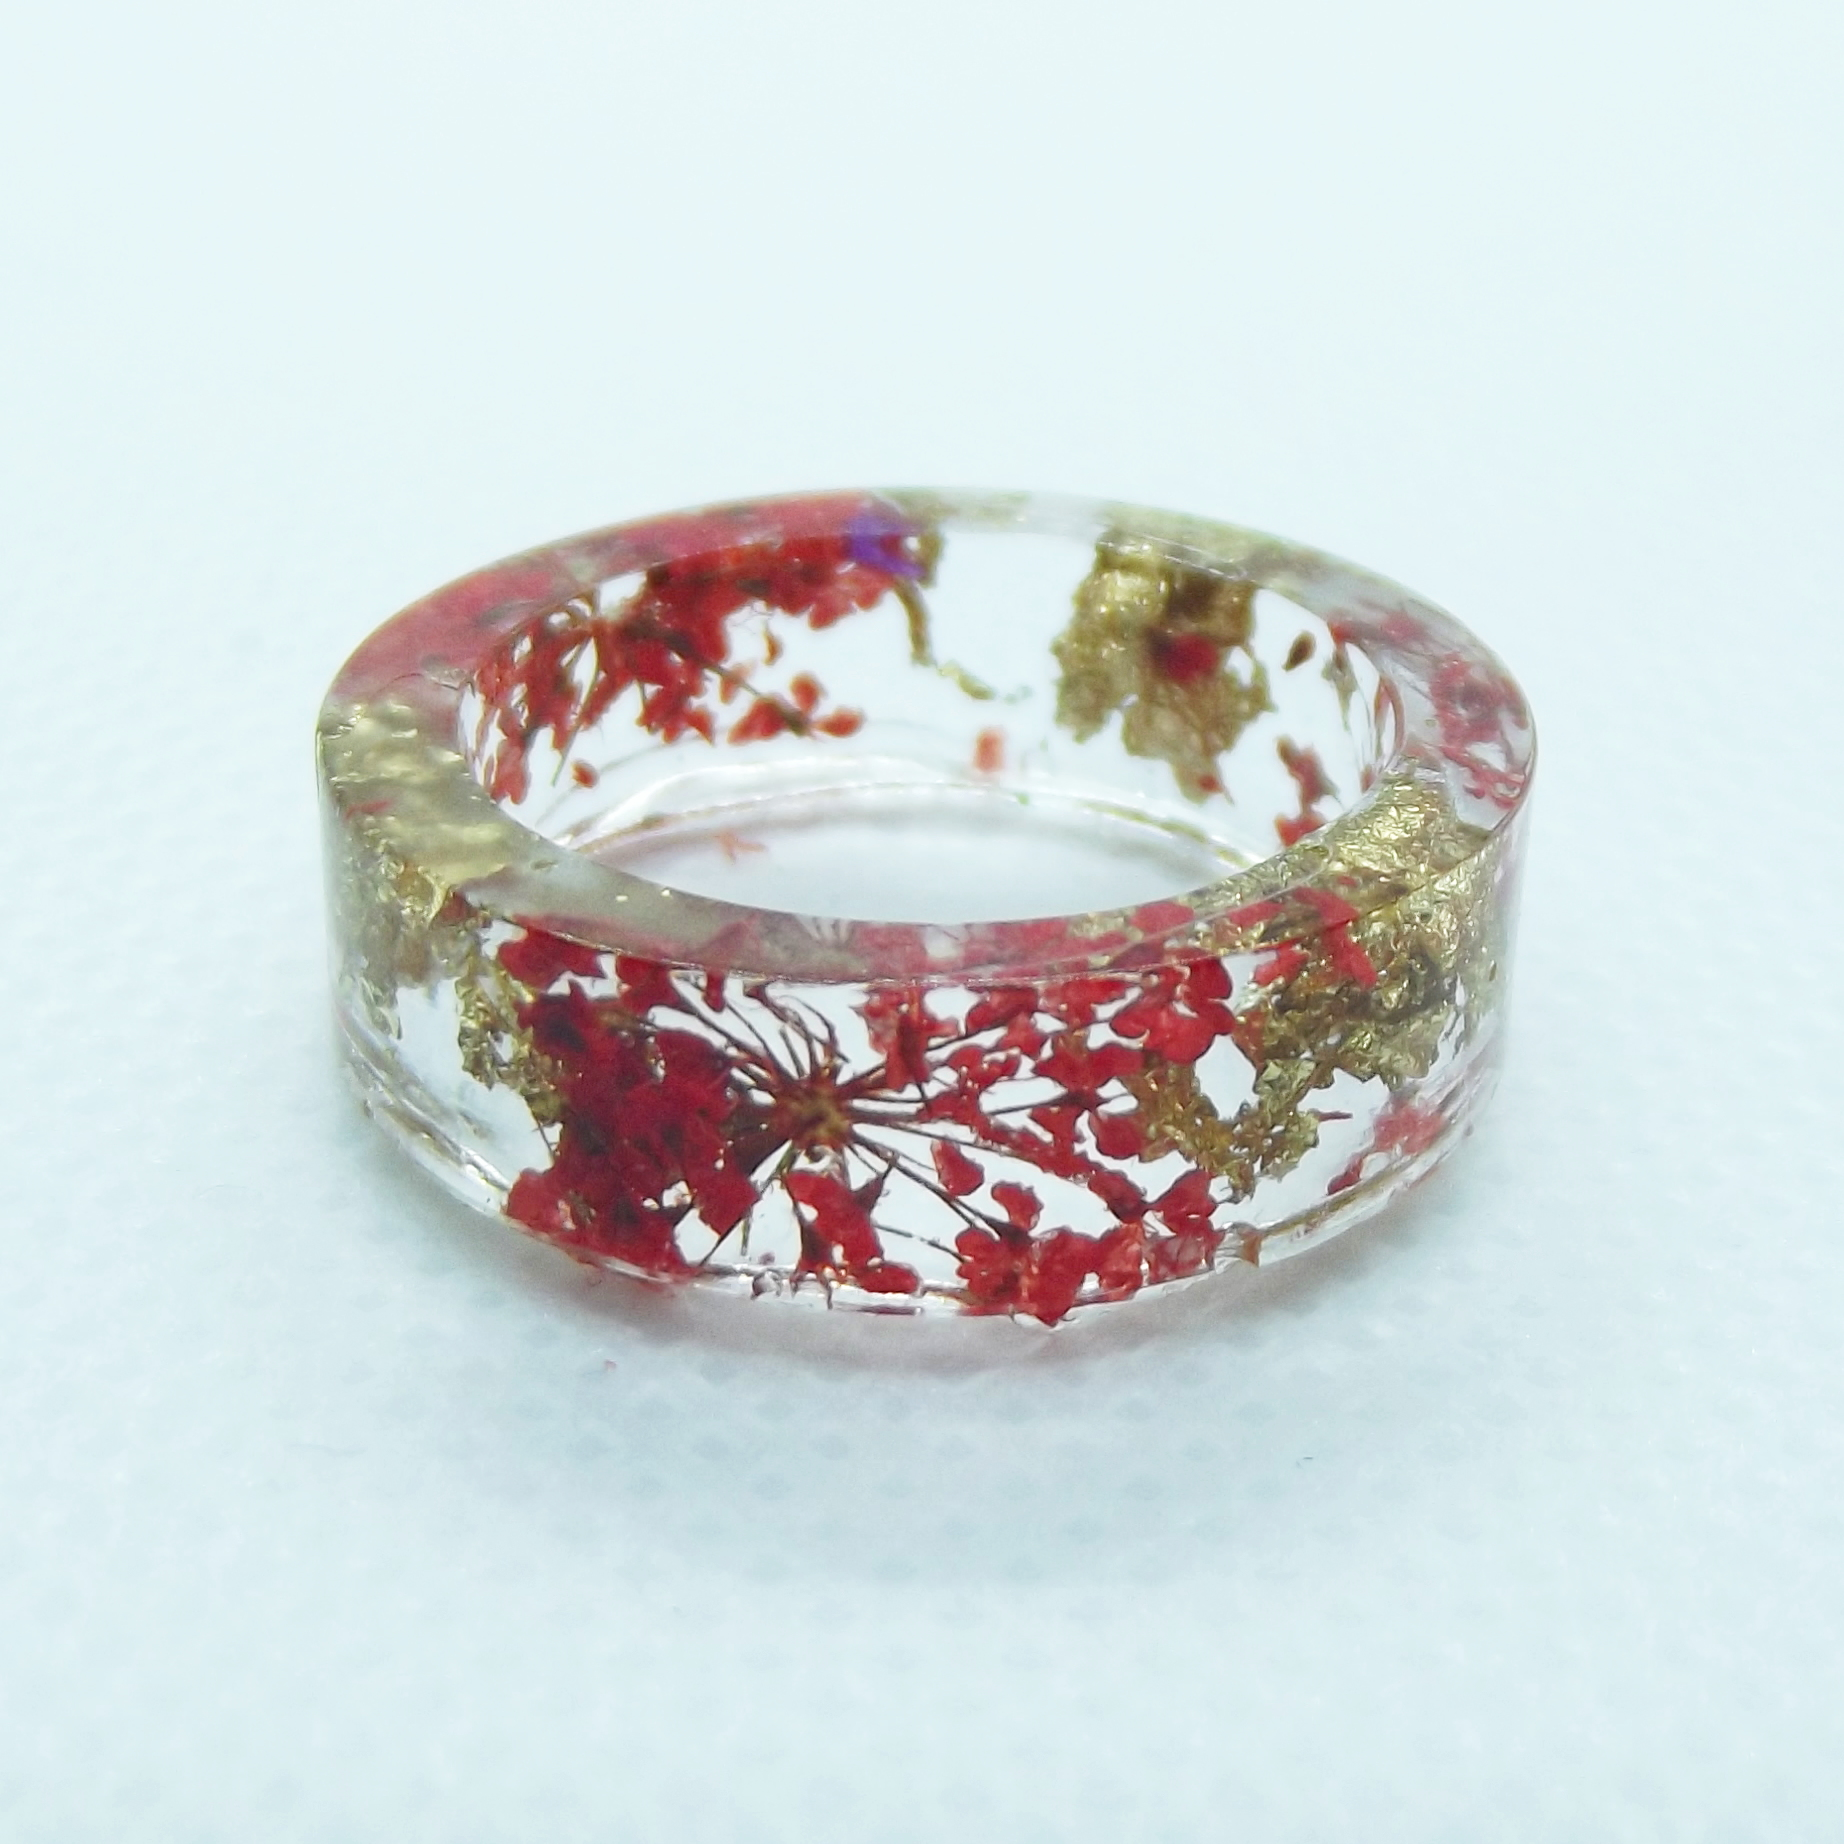 Resin Engagement Ring: Is It Even A Thing?